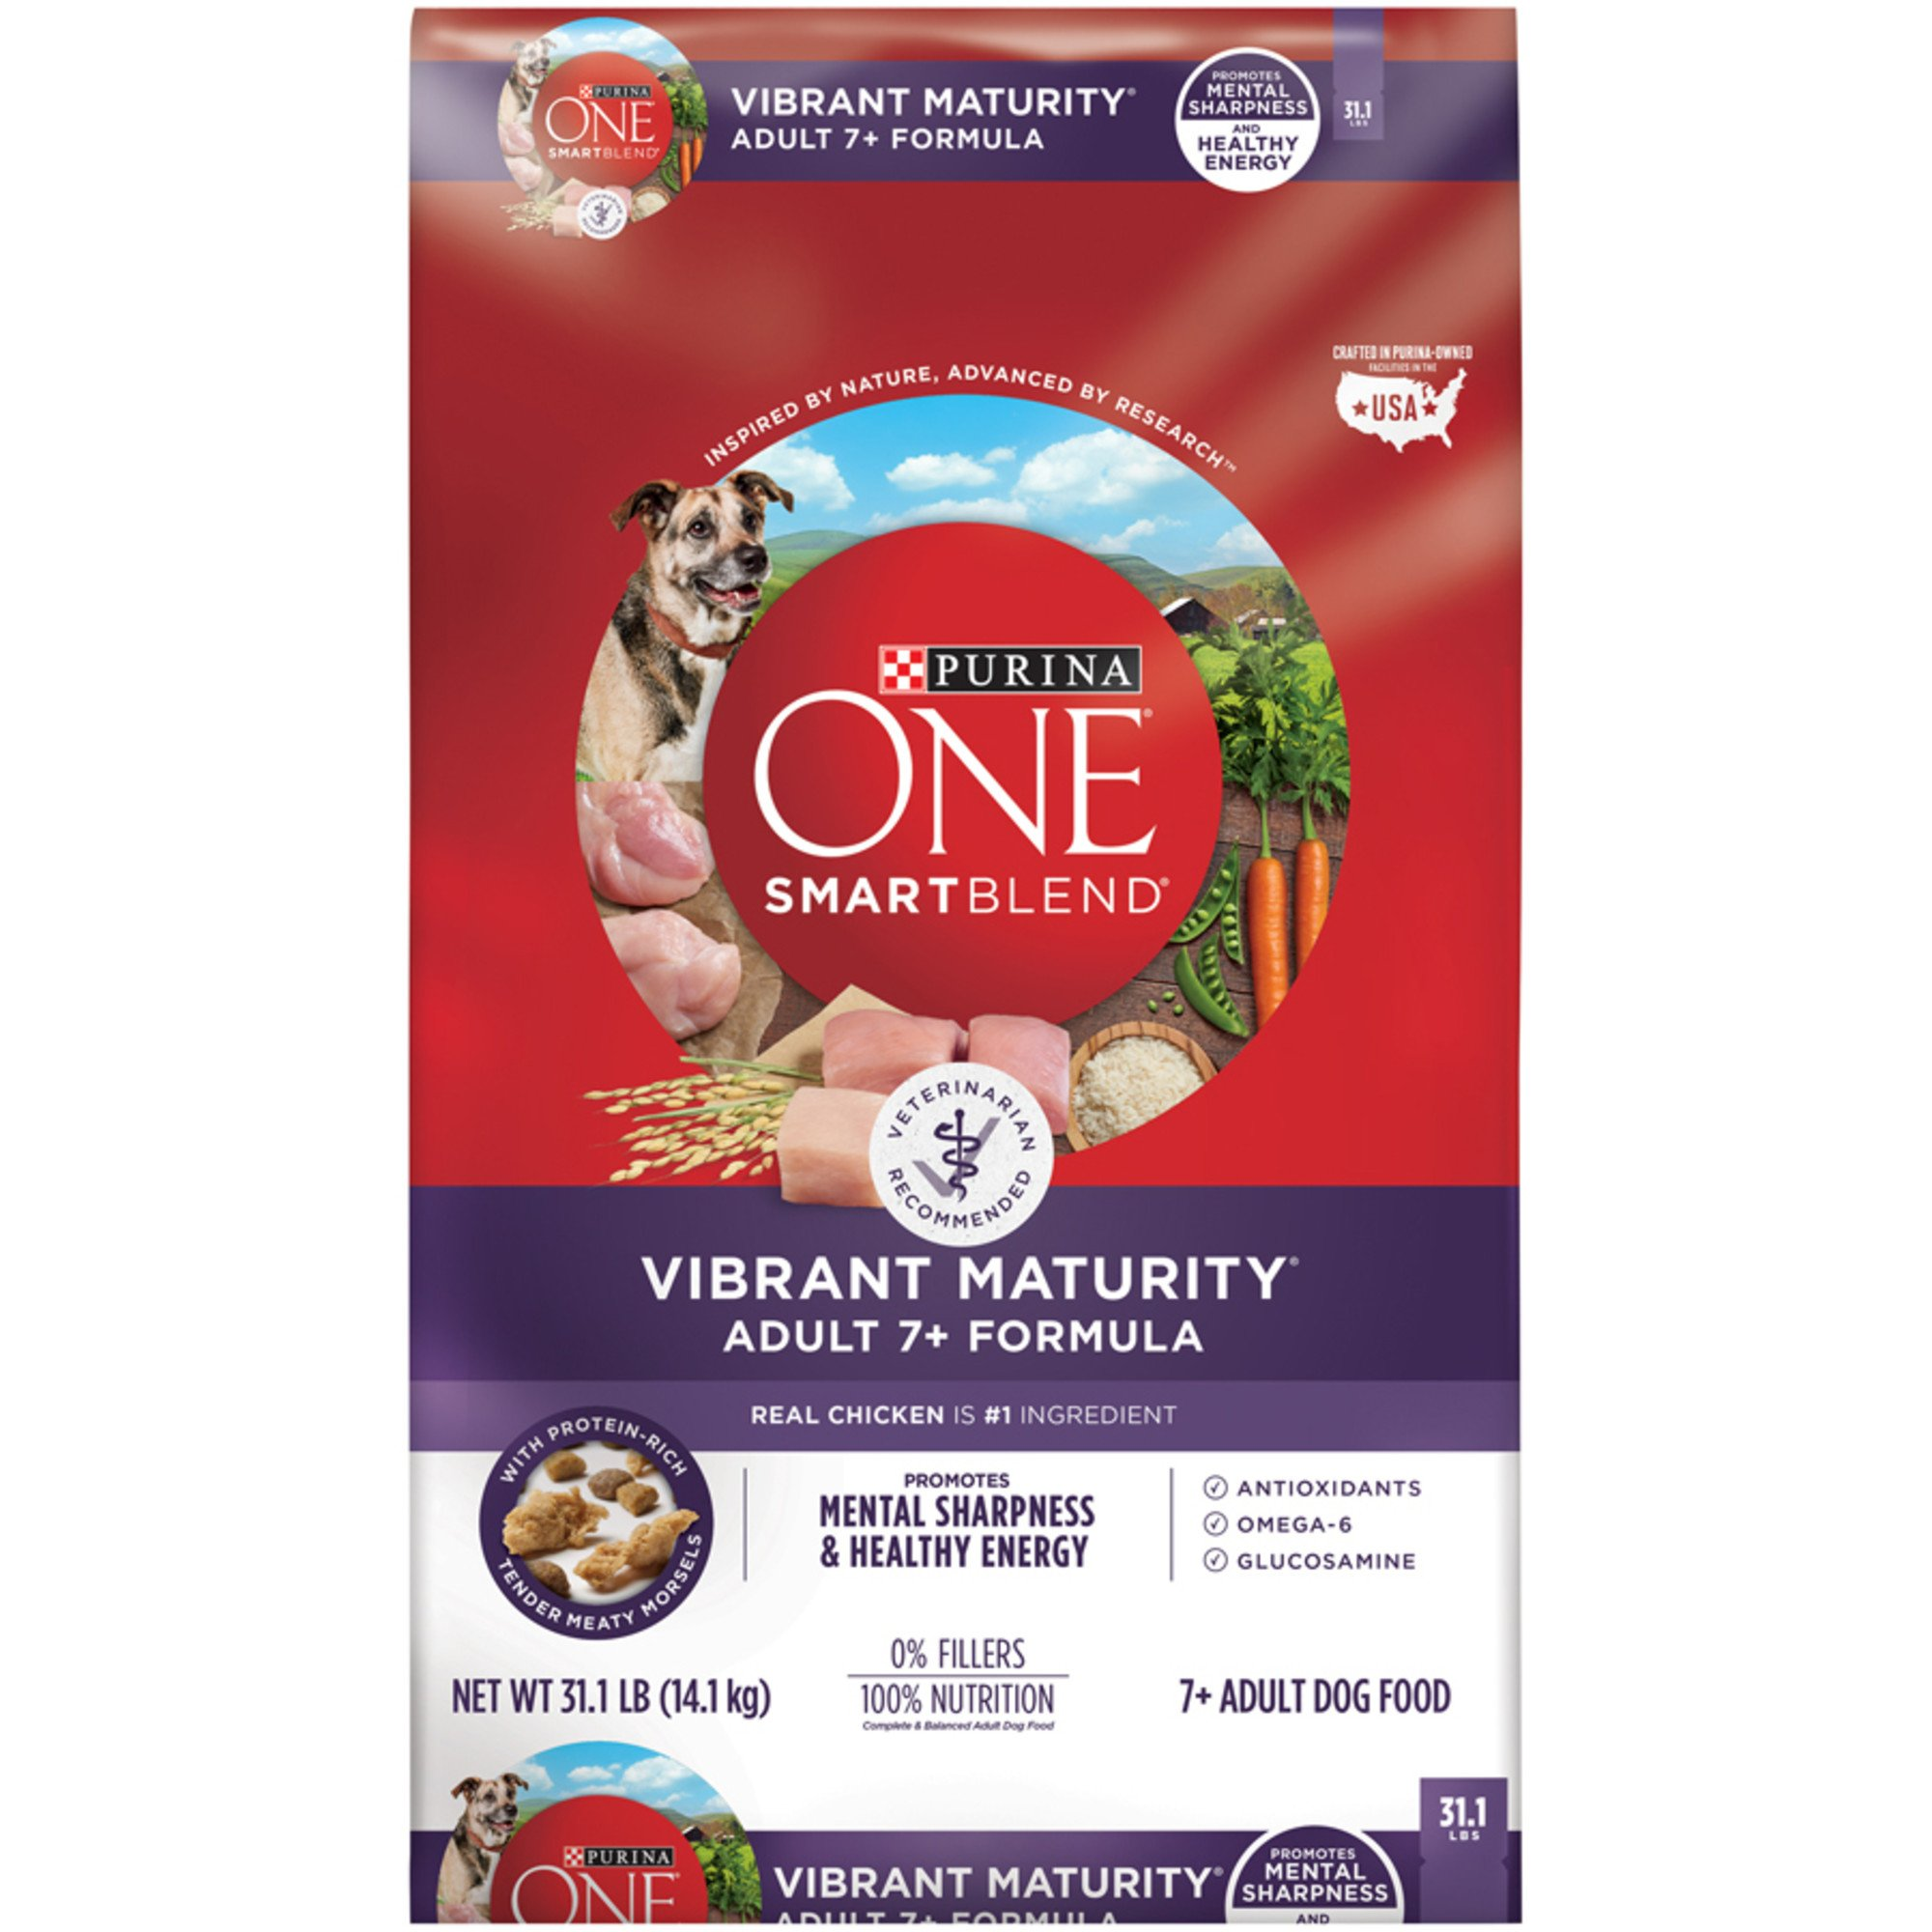 purina one smartblend vibrant maturity 7 senior formula. Black Bedroom Furniture Sets. Home Design Ideas